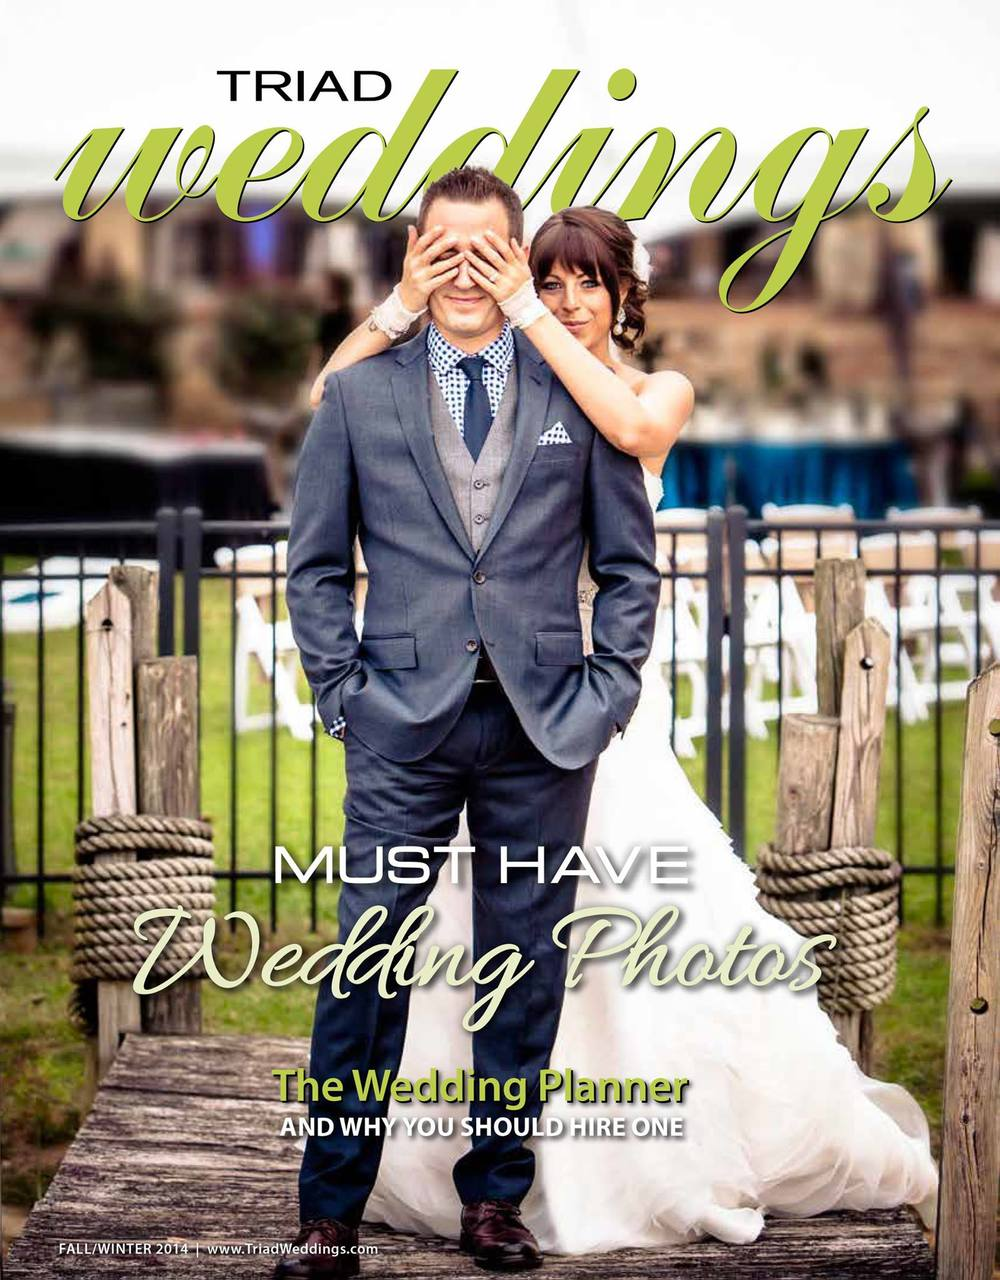 Fall/Winter 2014 issue of TriadWeddings Magazine, The Triad Area's Leading Wedding Magazine And Planning Guide!